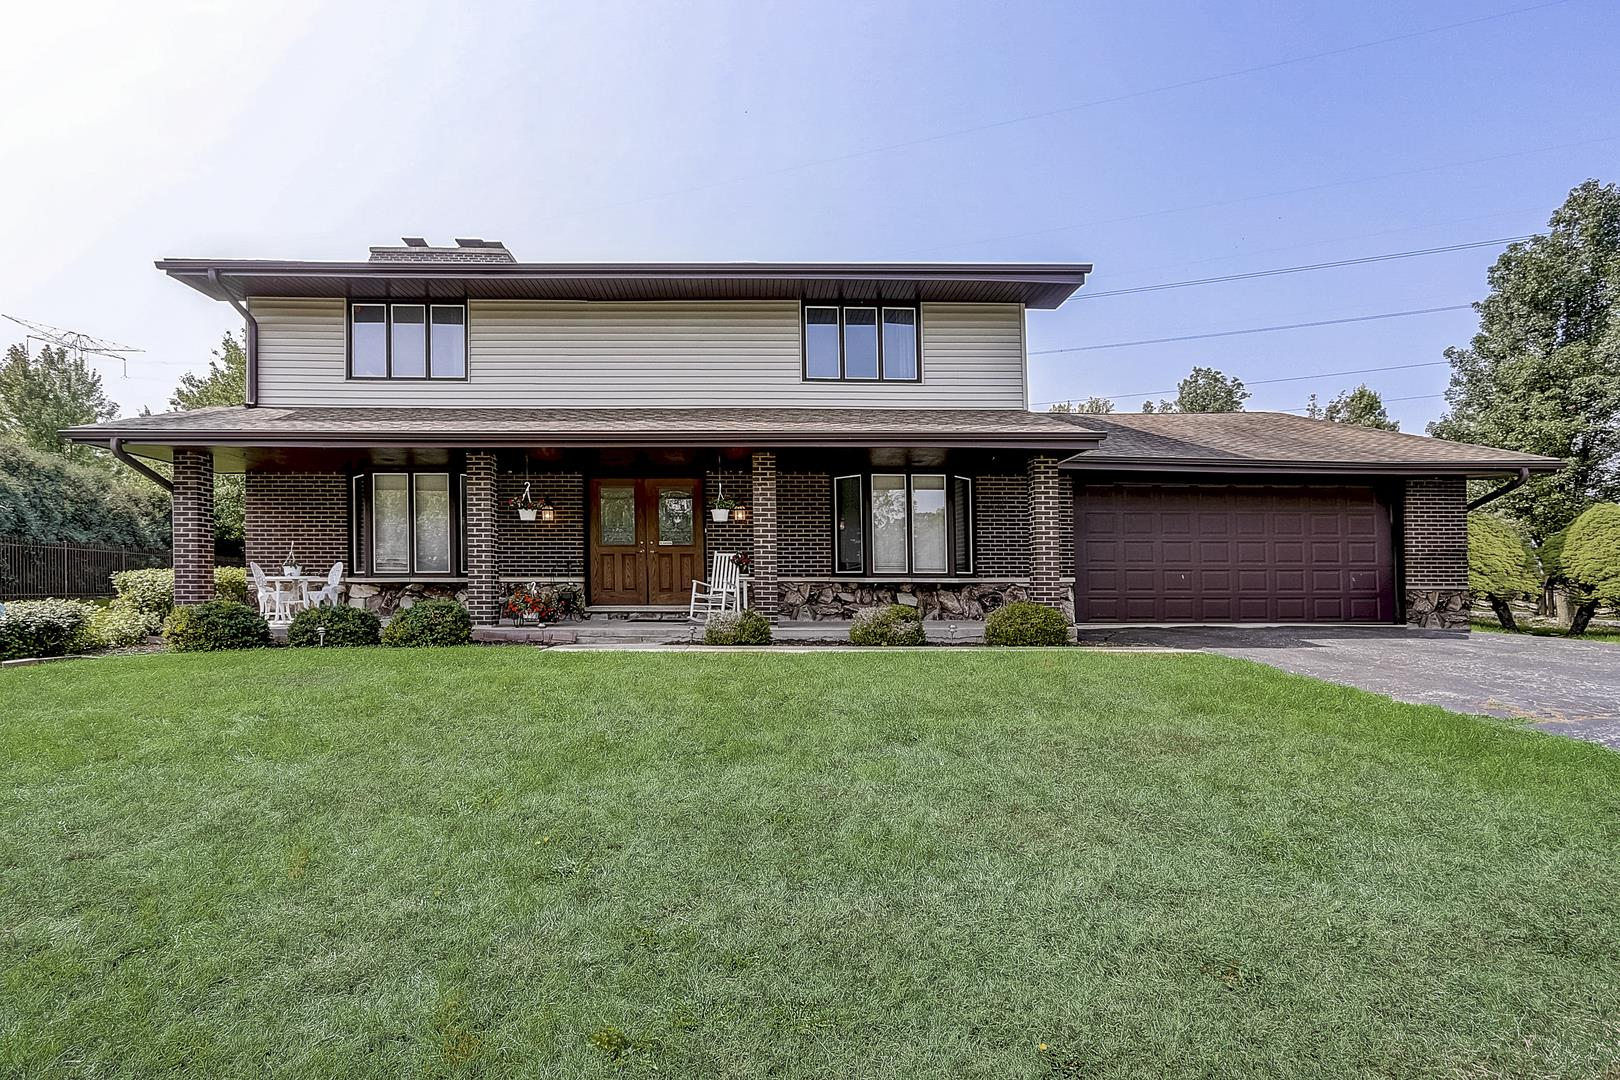 16134 S Oak Valley Trail, Homer Glen, IL 60491 - #: 10861751